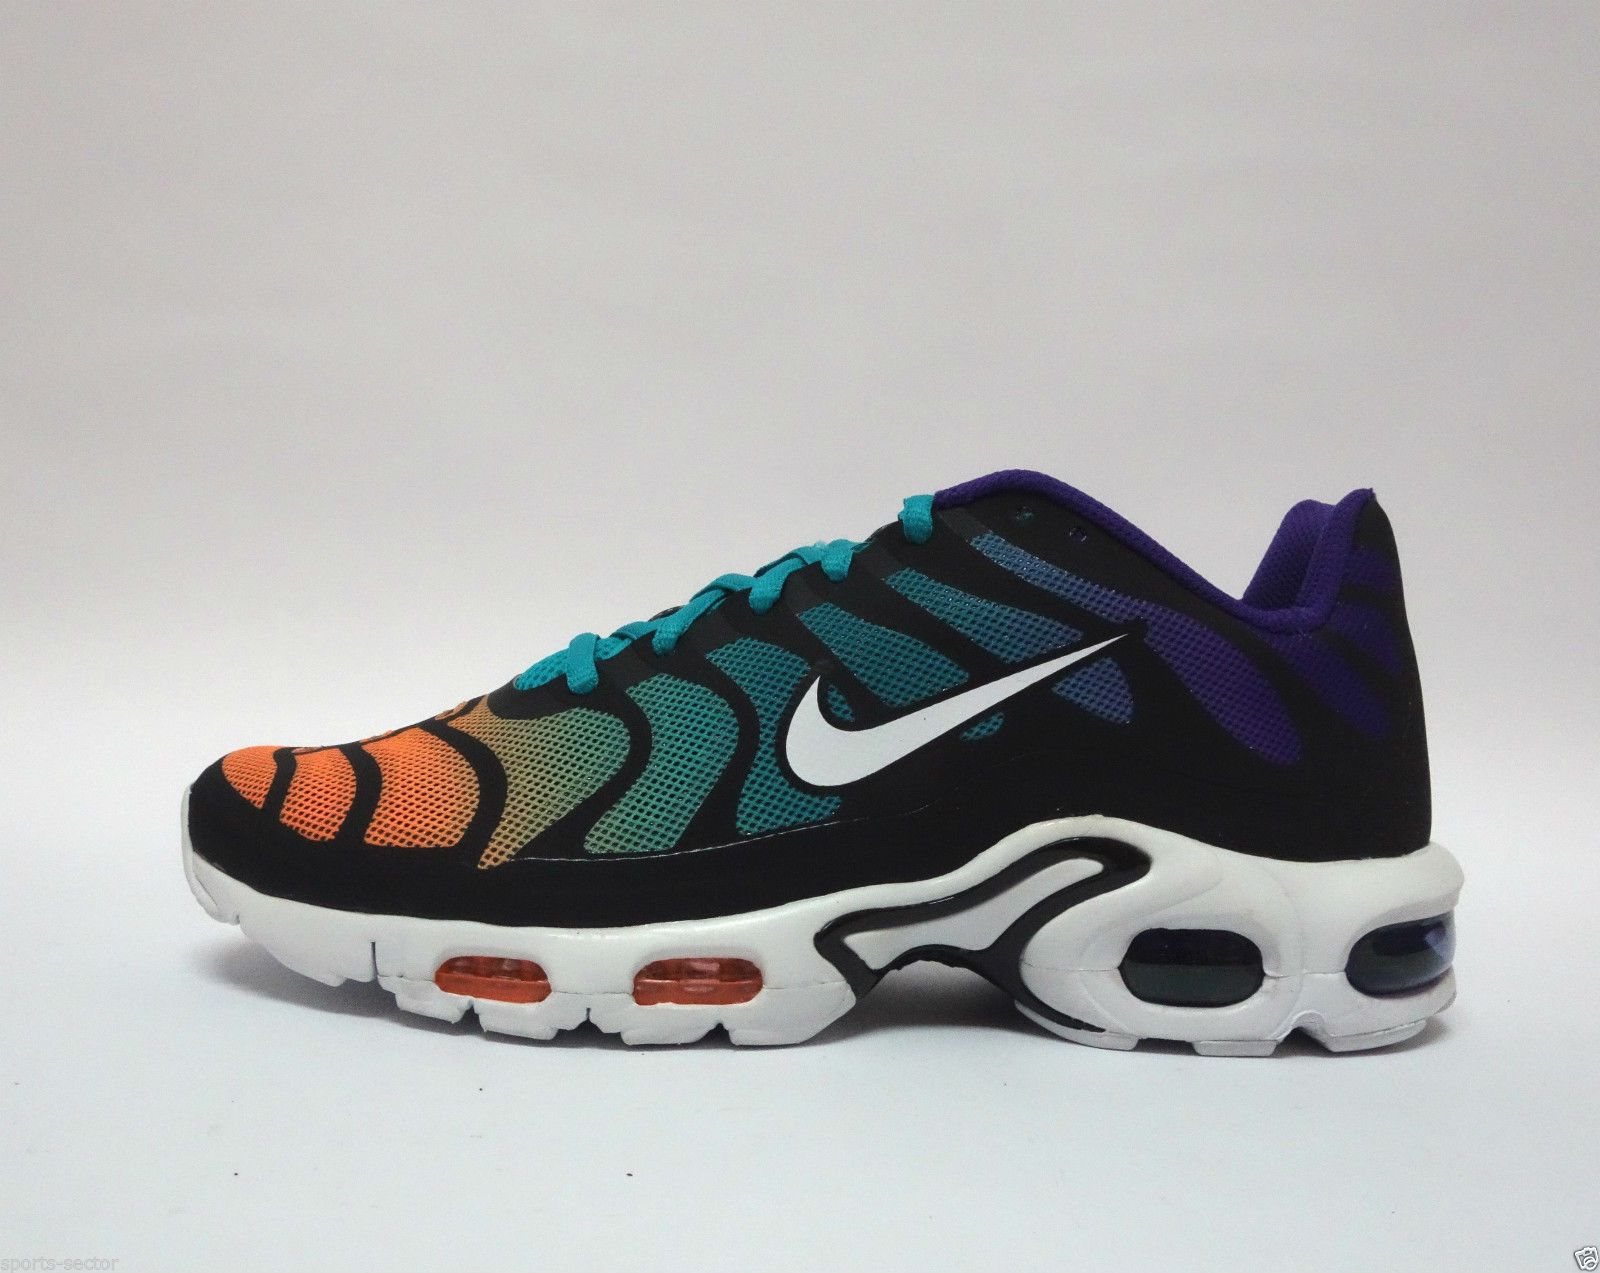 best service fc868 7a28b Nike Air Max Plus Hyperfuse TN1 Tuned Mens Trainers Shoes Turbo GreenWhite   eBay